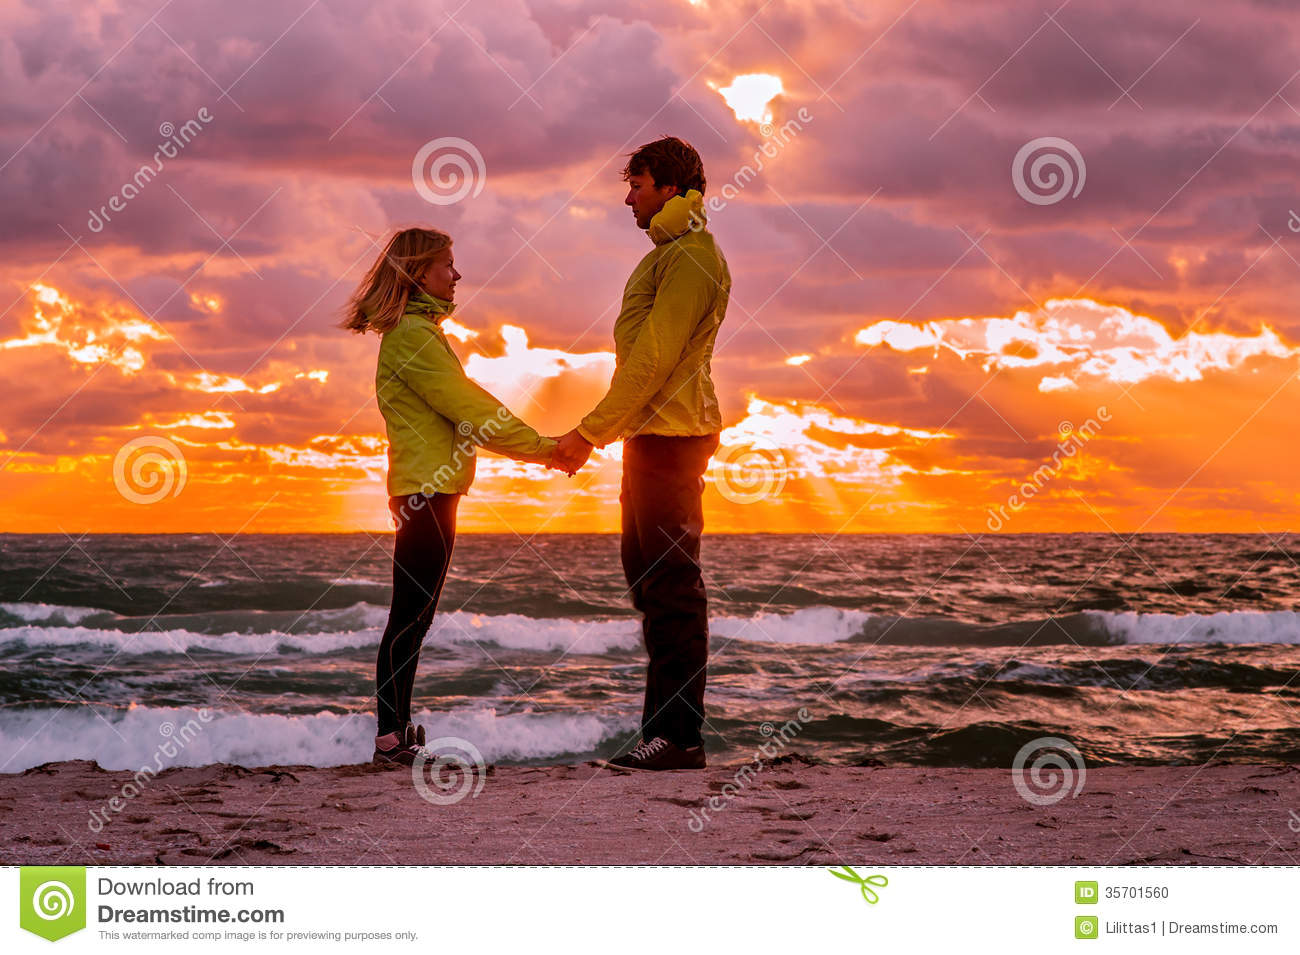 Love Wallpaper Man Woman : couple Man And Woman In Love Standing On Beach Seaside ...